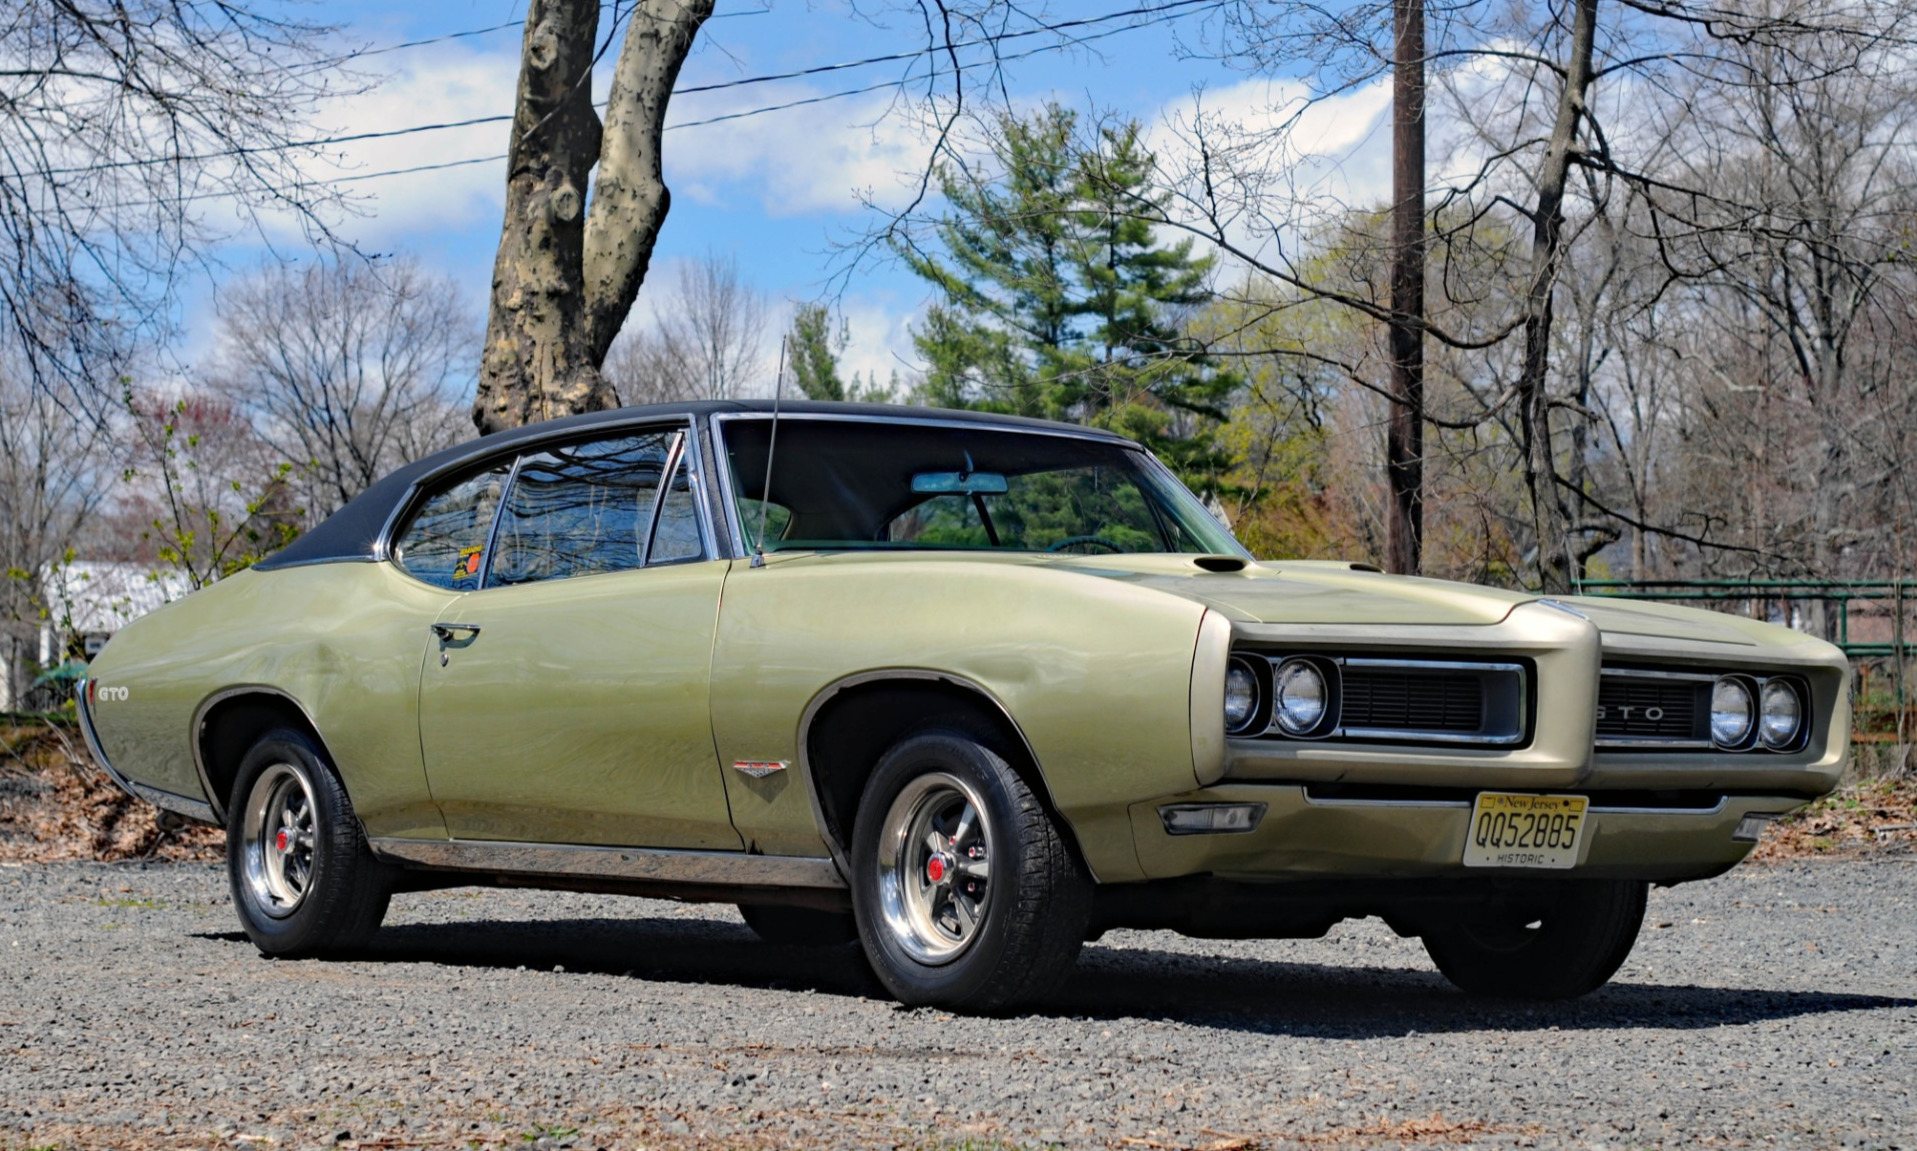 hight resolution of 1968 pontiac gto for sale on bat auctions sold for 18 400 on june 13 2018 lot 10 238 bring a trailer